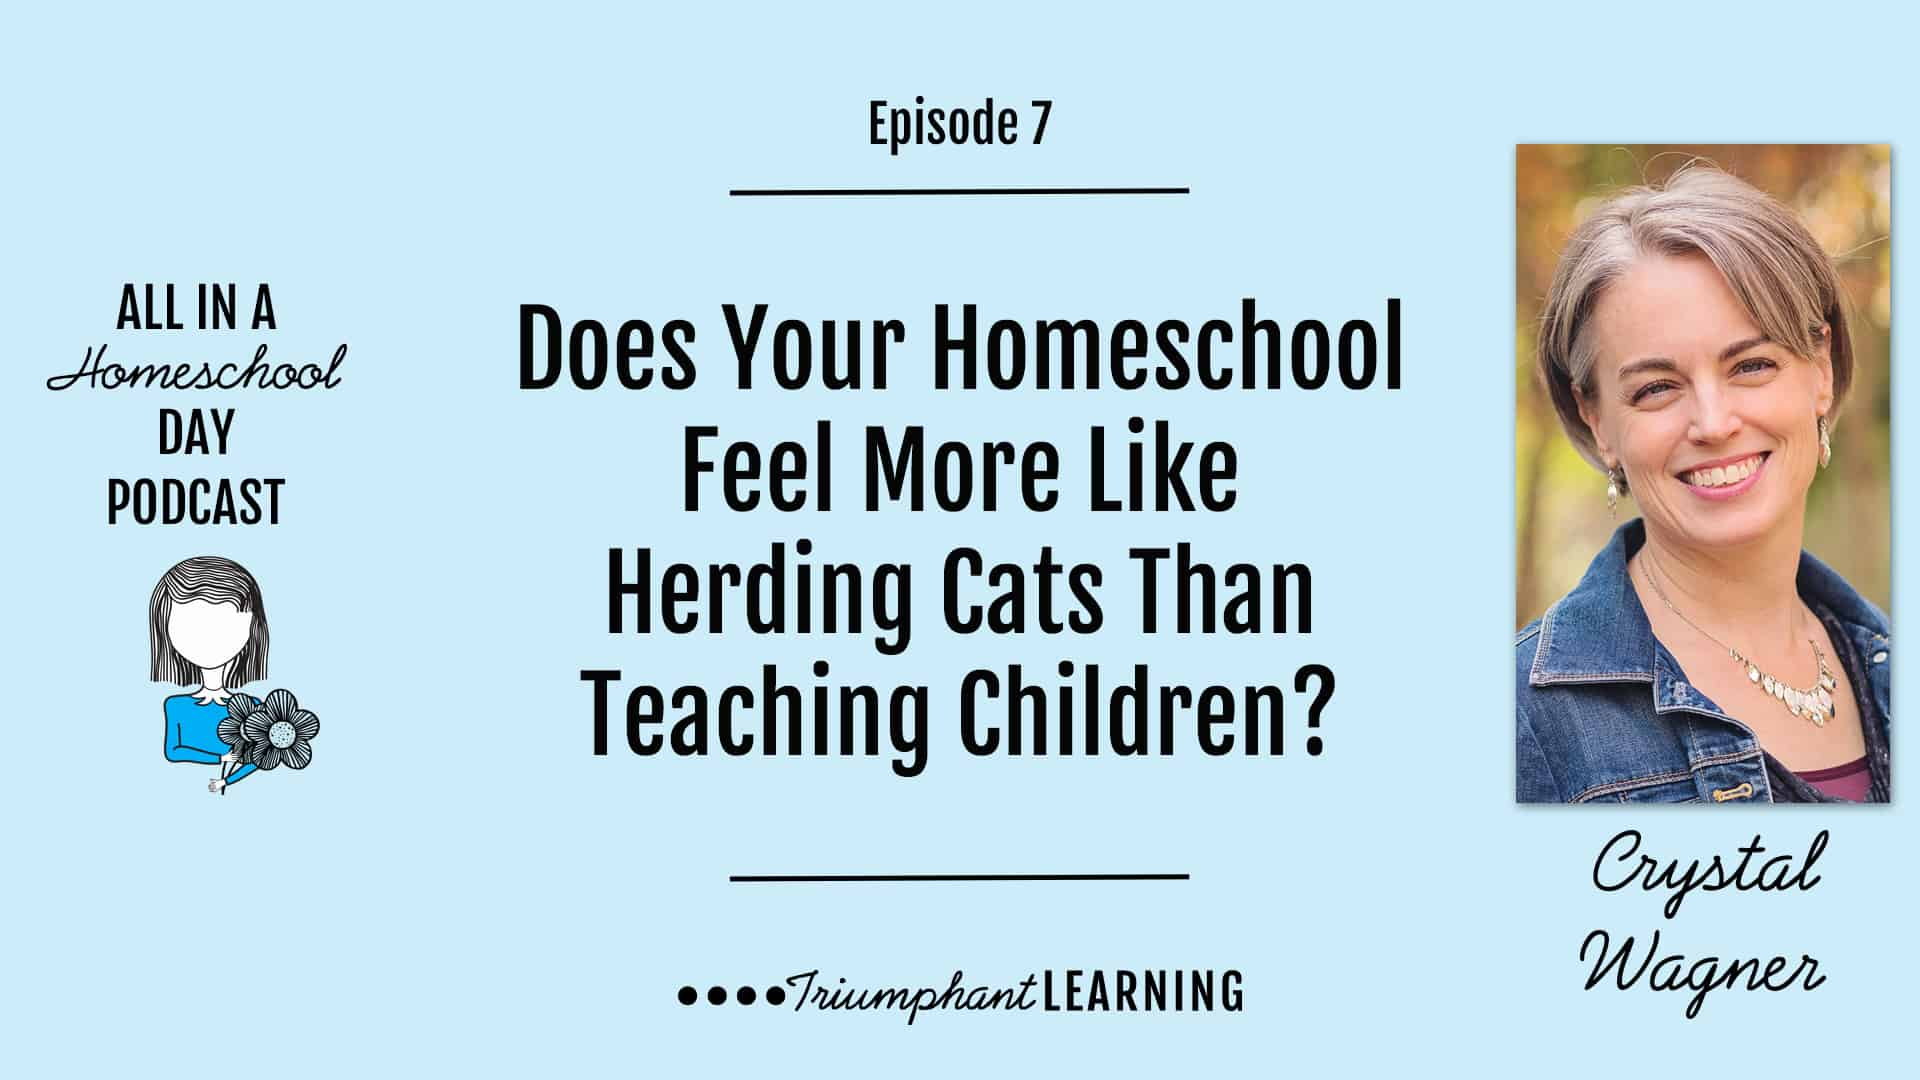 It's difficult to accomplish anything in your homeschool when it feels like you are herding cats and no one is heading in the right direction. In this episode, you will hear about six things that help our homeschool stay on track.